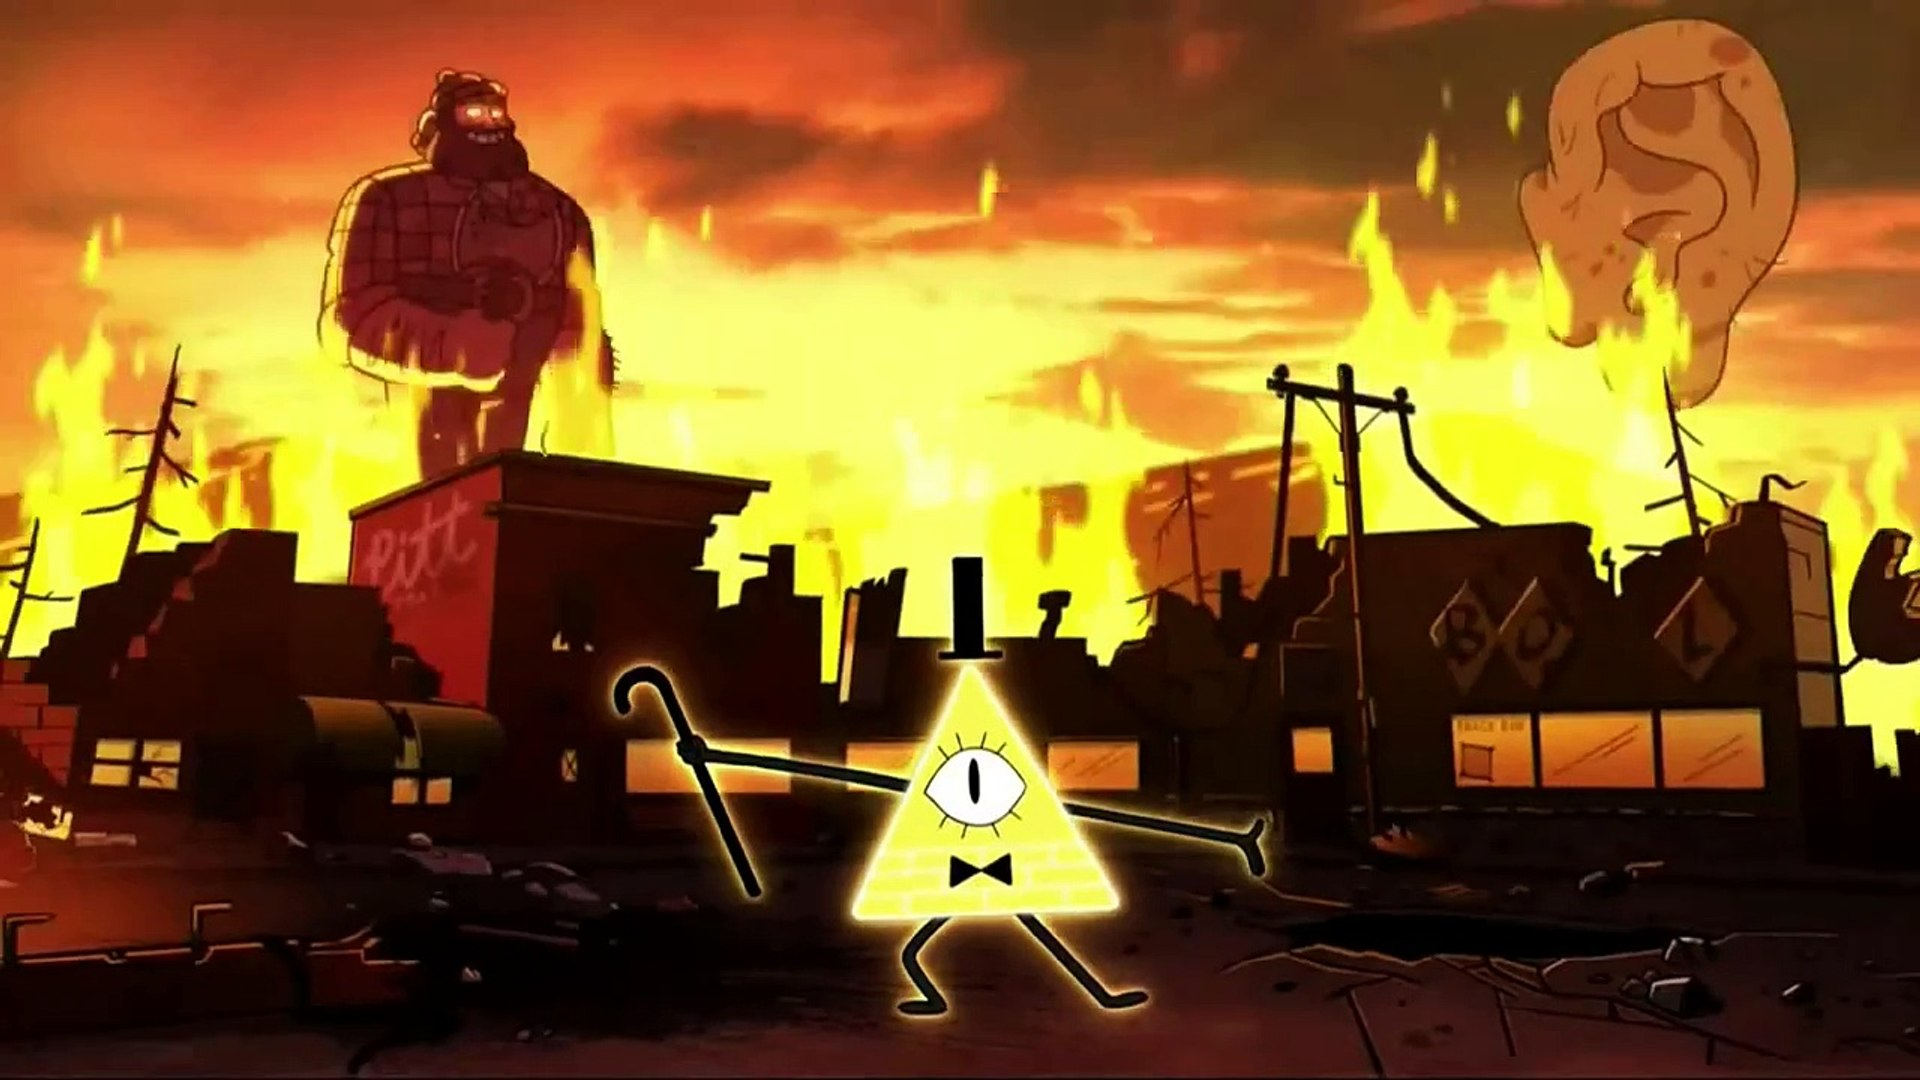 Gravity Falls Weirdmaggedon Bill Cipher Intro Geheimnisse Und Codes Hdde